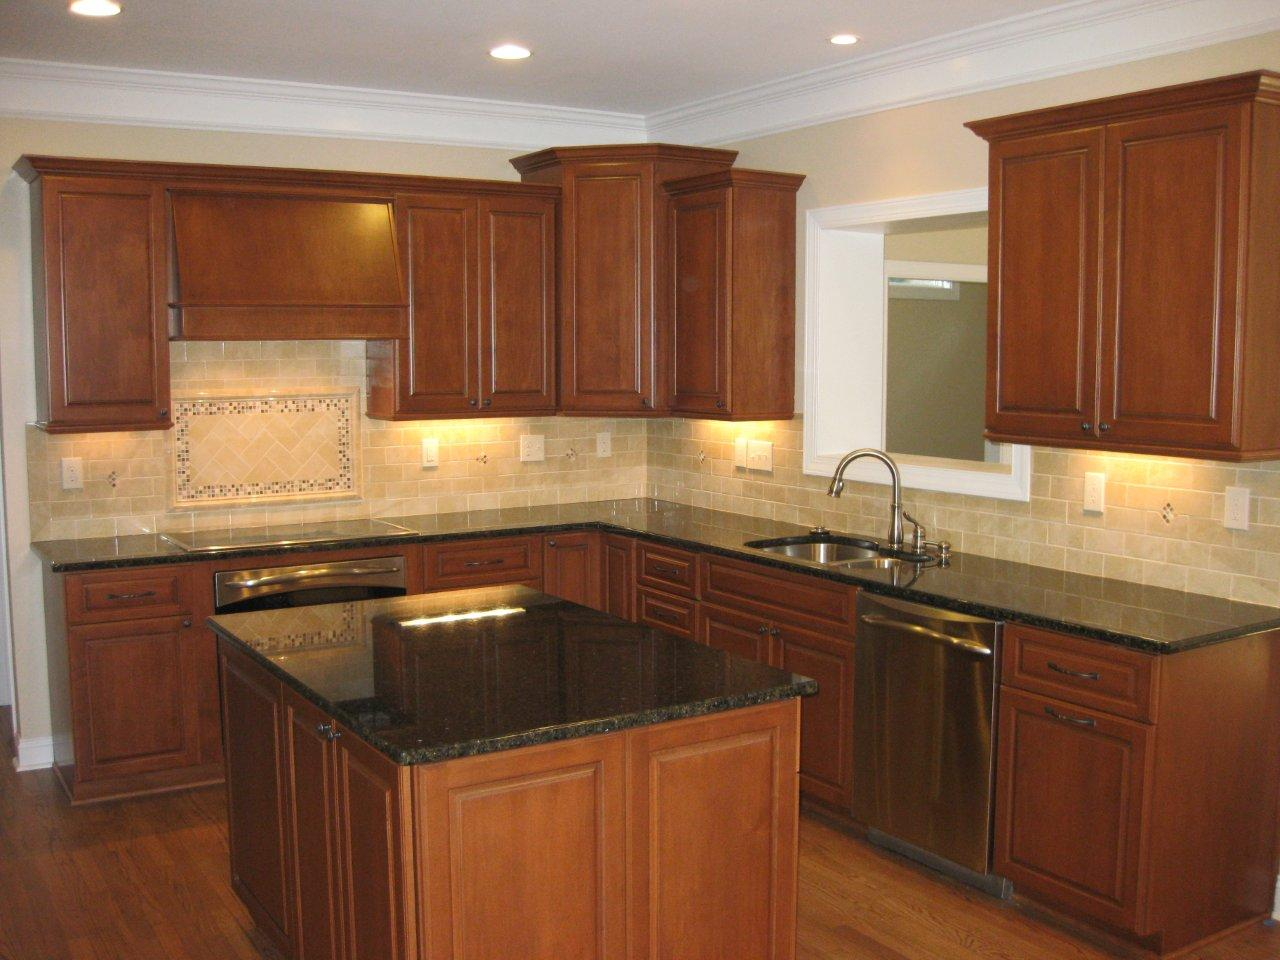 how much does kitchen remodel cost appliance package a in charlotte nc